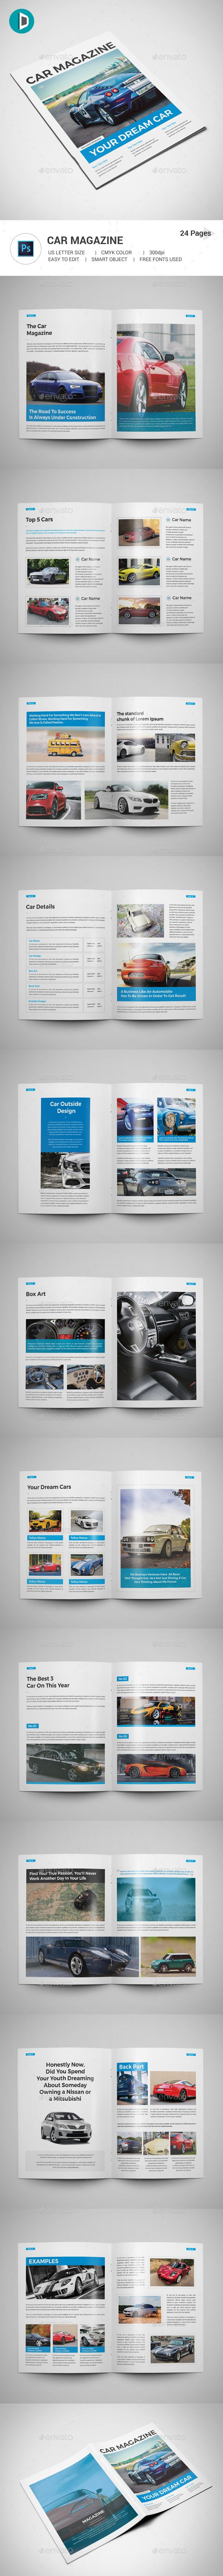 Car Magazine Template PSD - 24 Pages US Letter Size